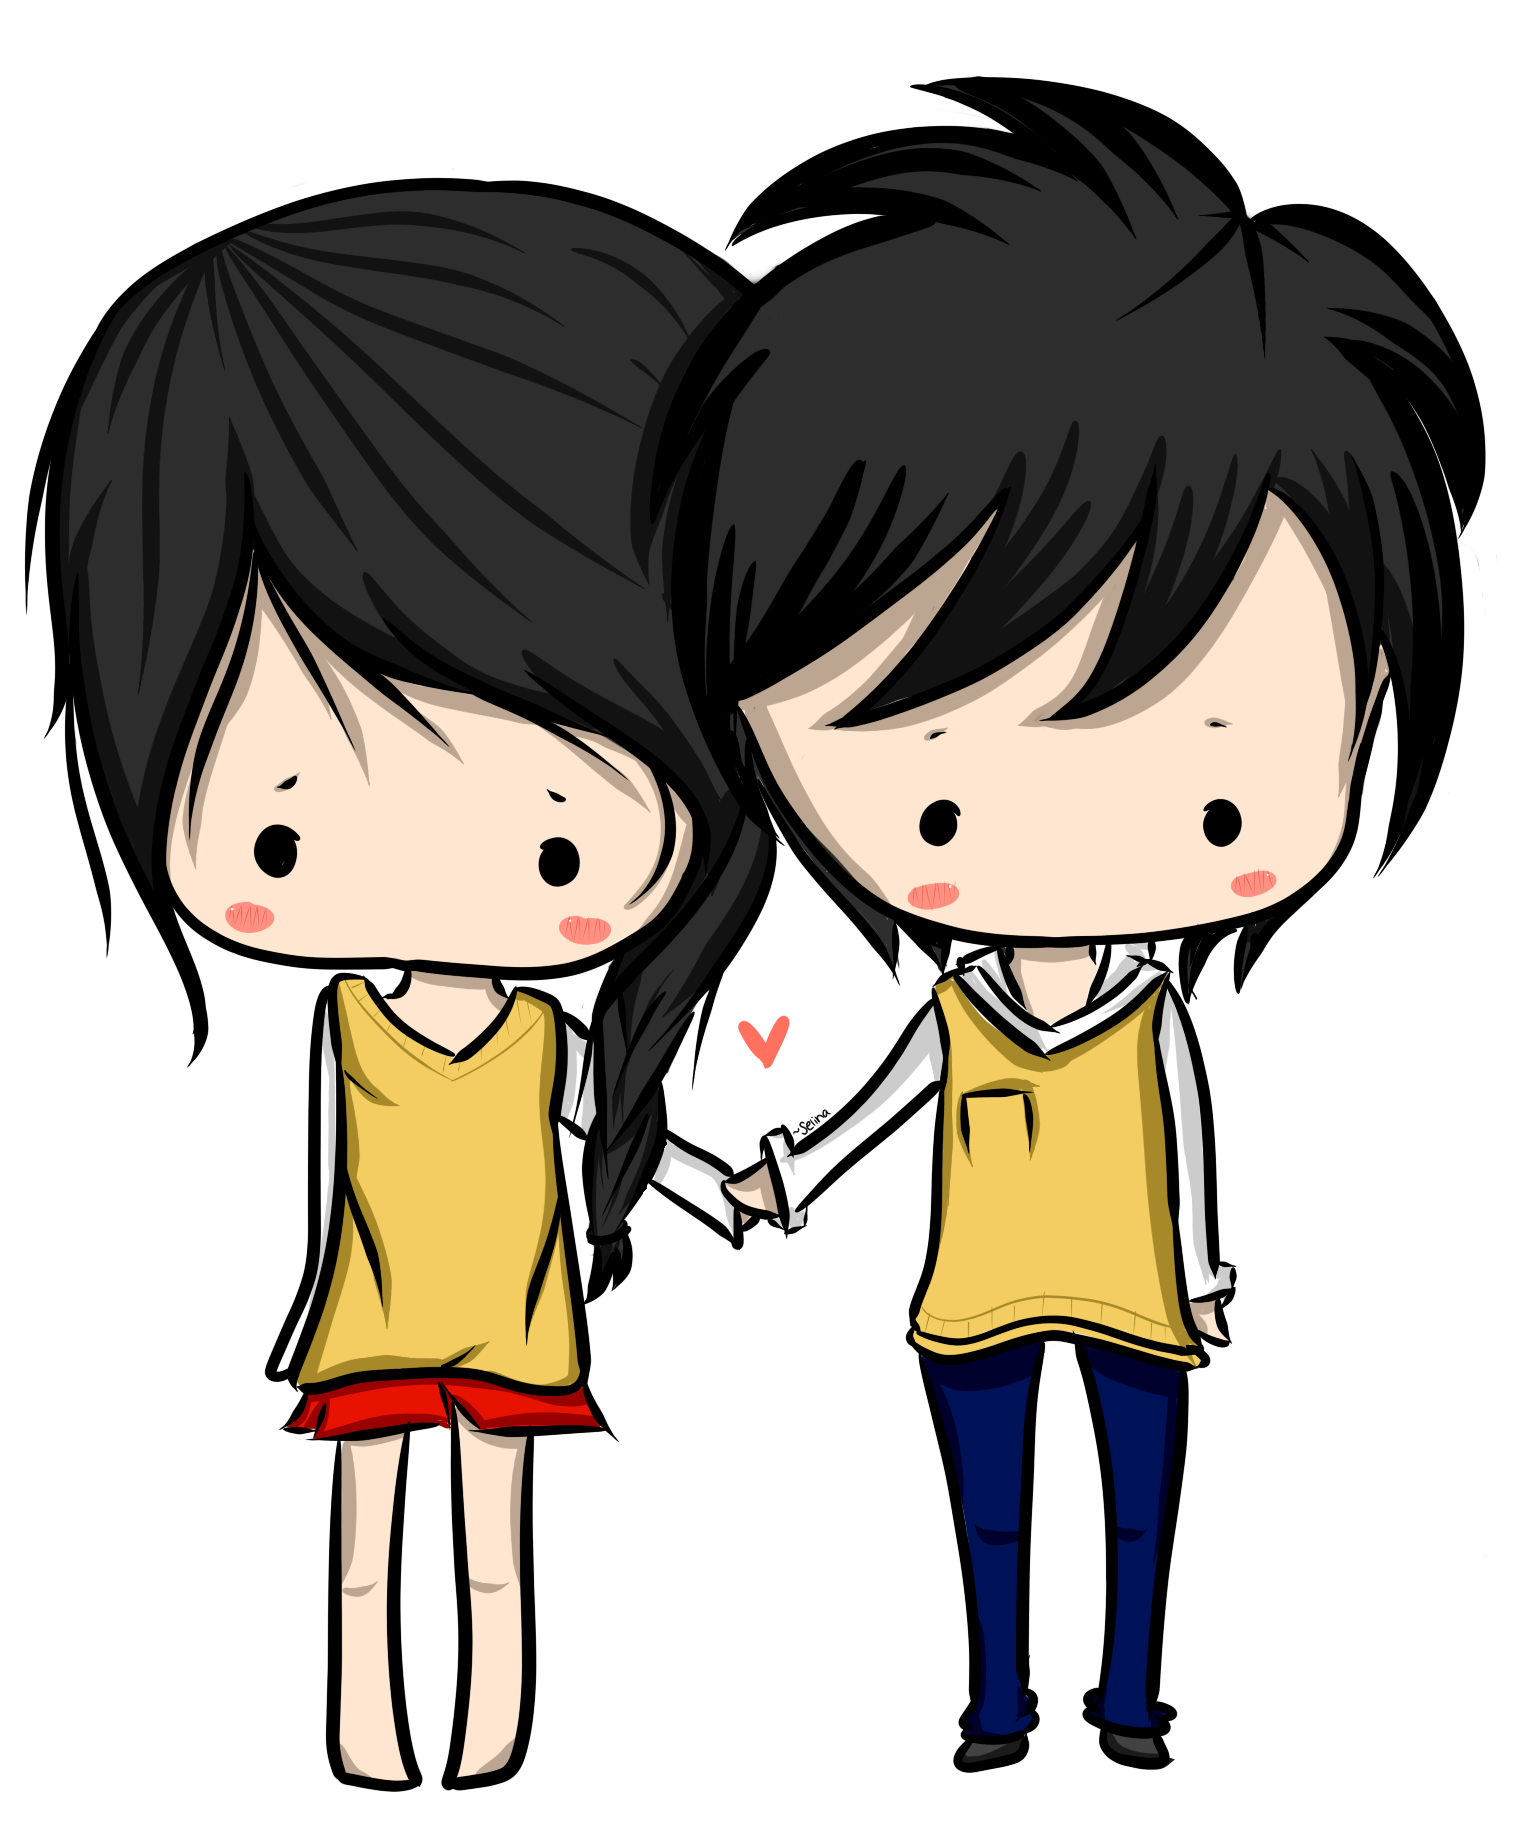 Chibi Couple (: by surlinaa on DeviantArt